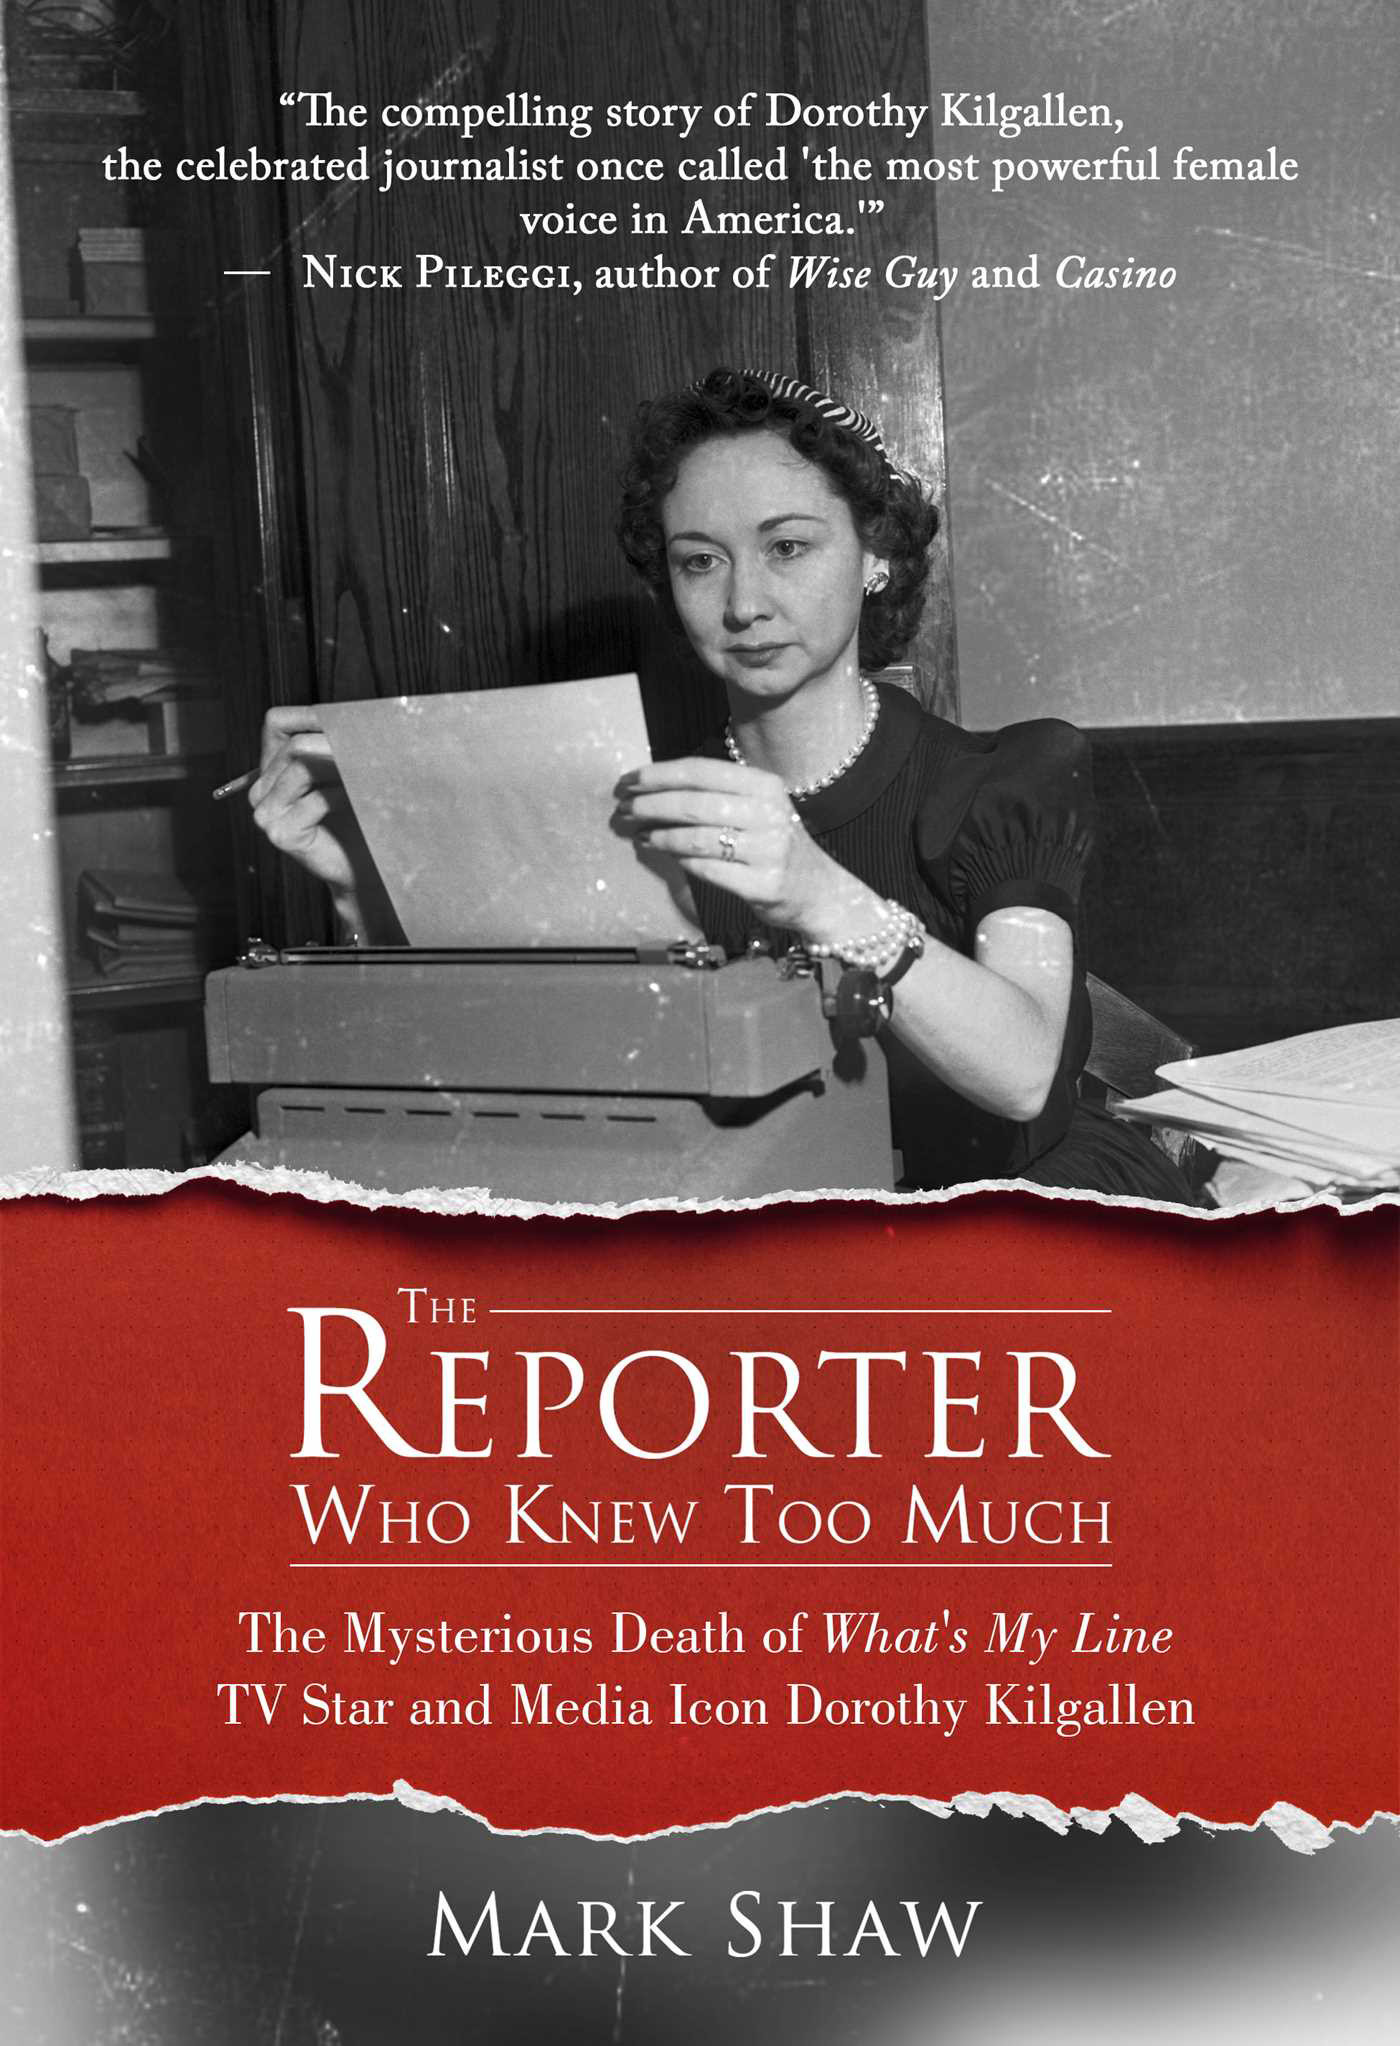 the-reporter-who-knew-too-much-mark-shaw-book-cover-2016